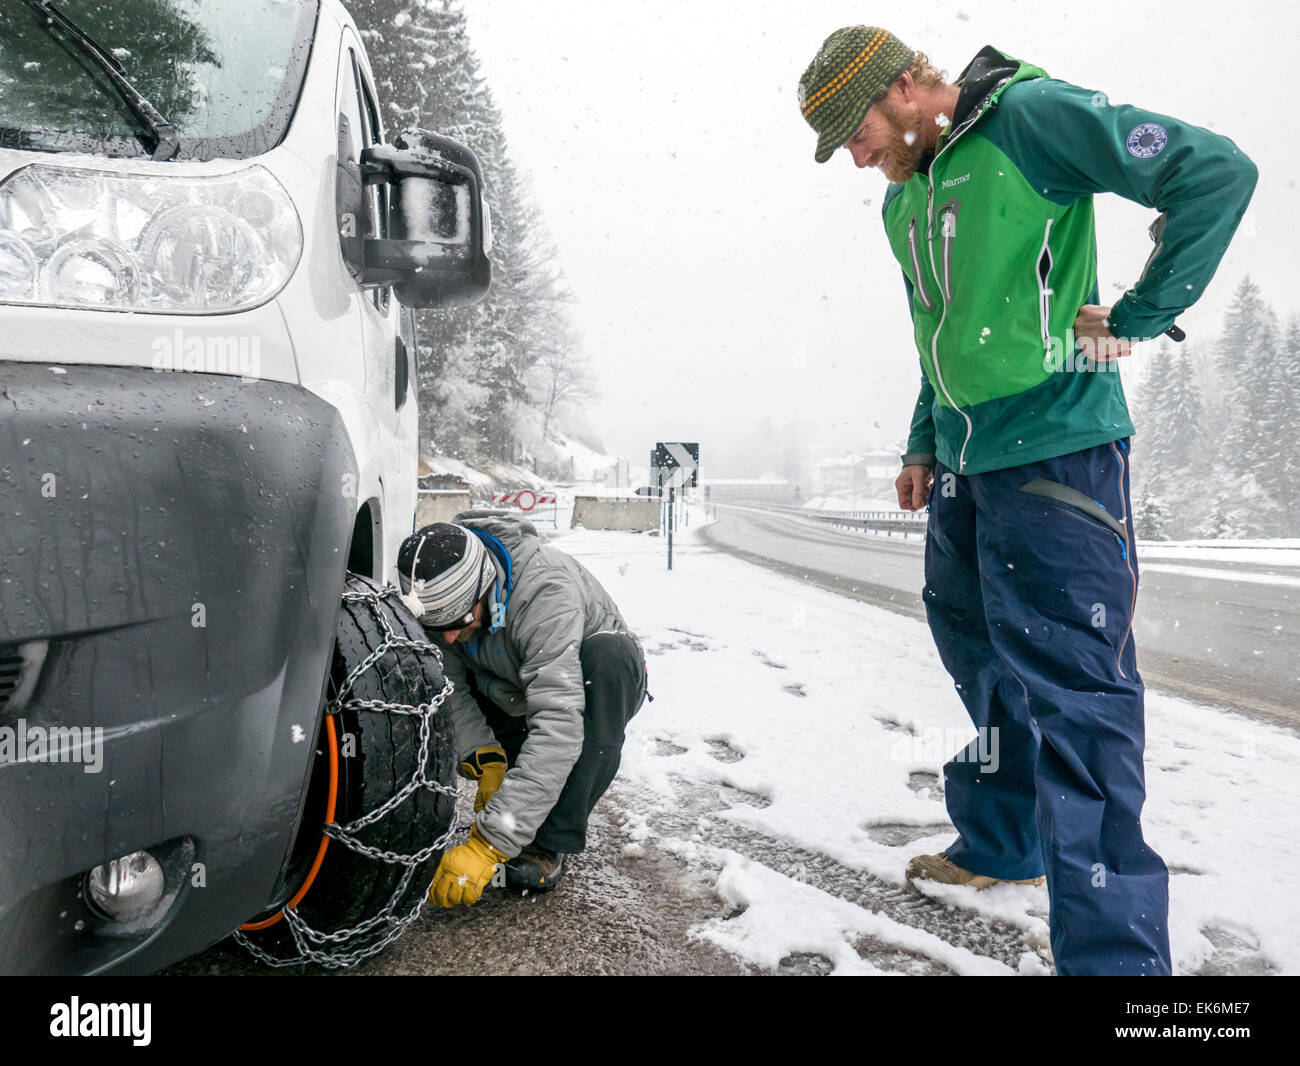 American skiers putting chains on a rental van, Dolomite Mountains, northern Italy - Stock Image